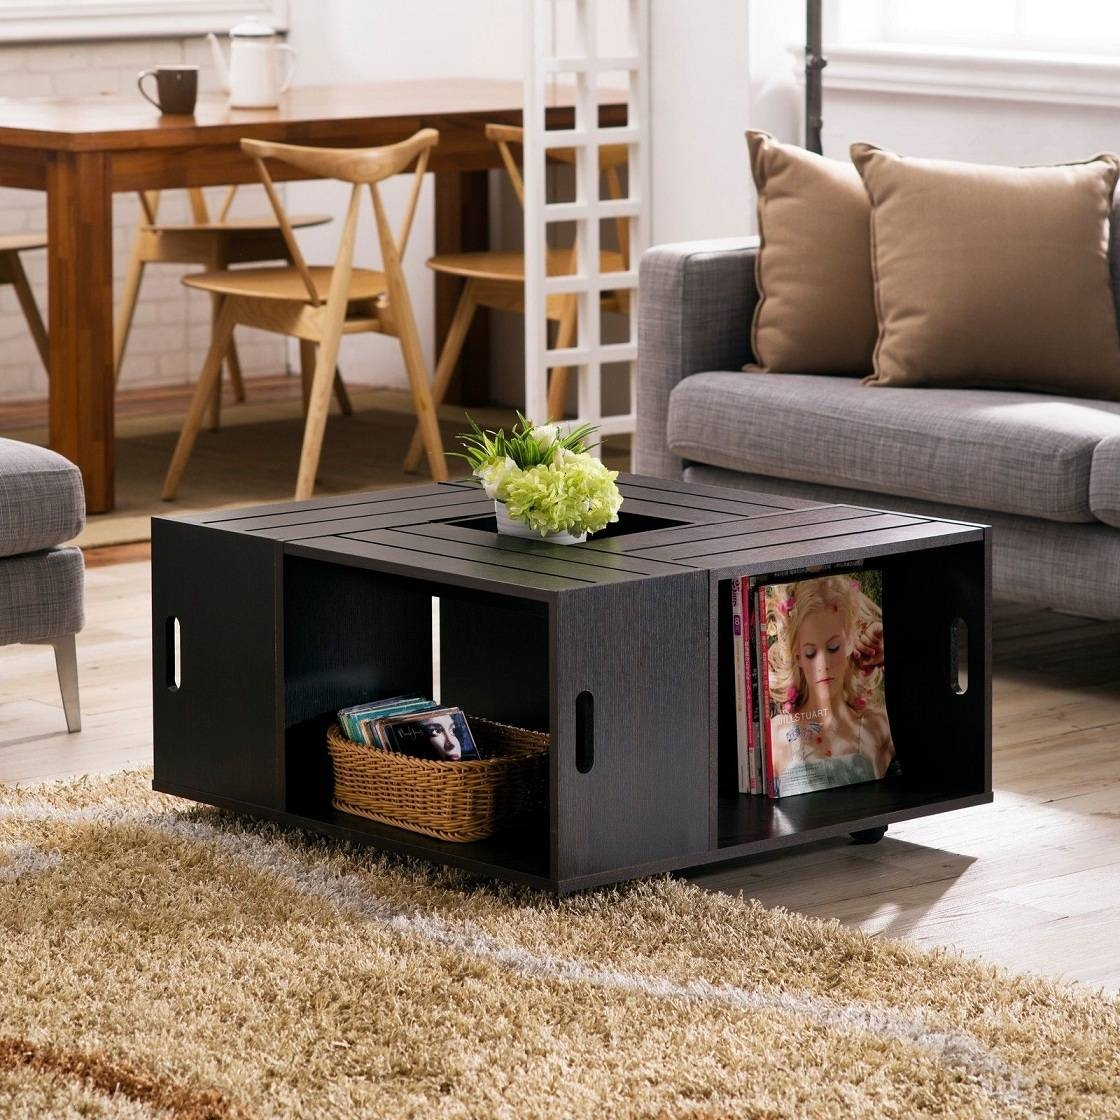 Coffee Table: New Black Coffee Table With Storage Ideas Coffee in Black Coffee Tables With Storage (Image 12 of 30)